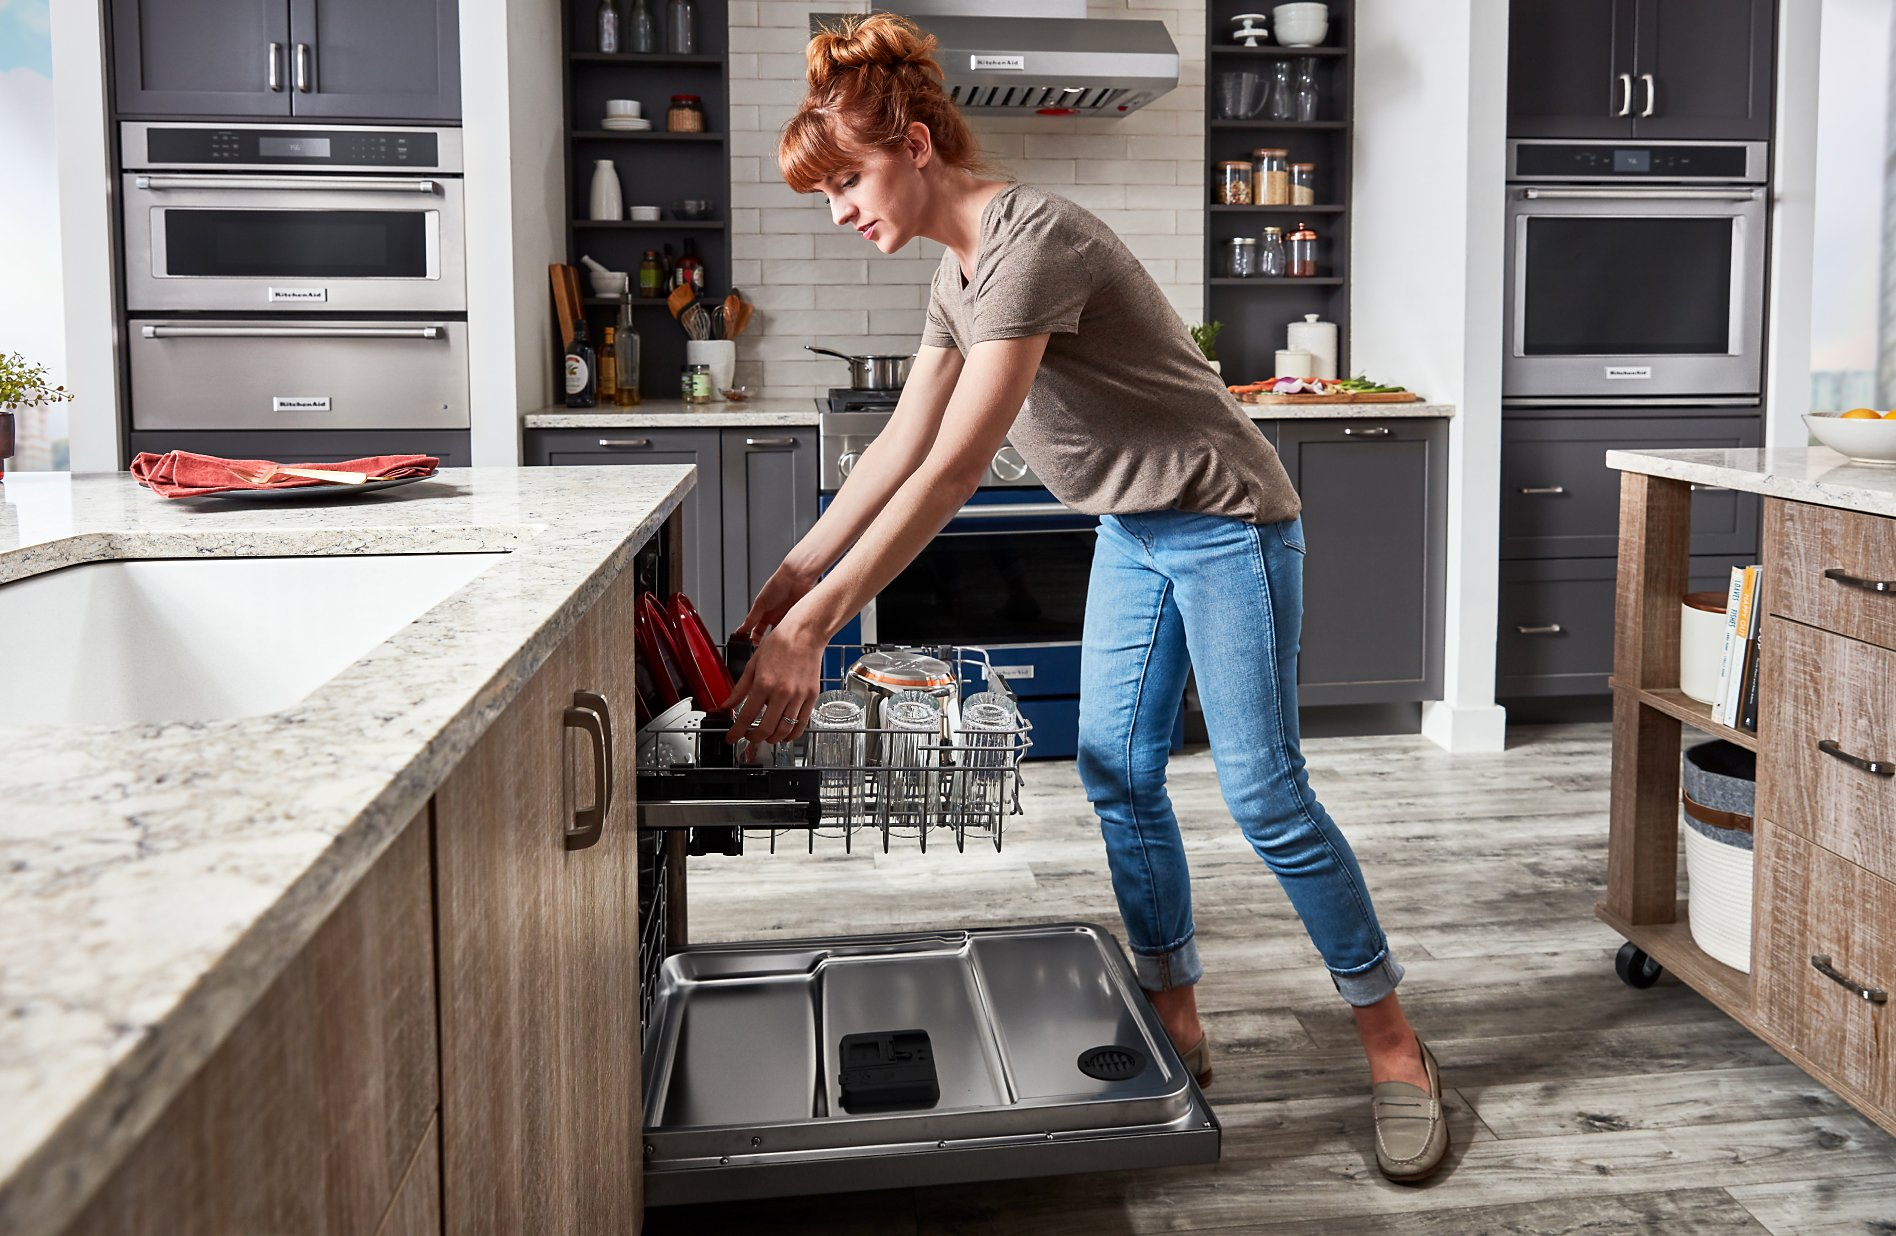 Woman rolling out the top rack of a dishwasher in a large kitchen